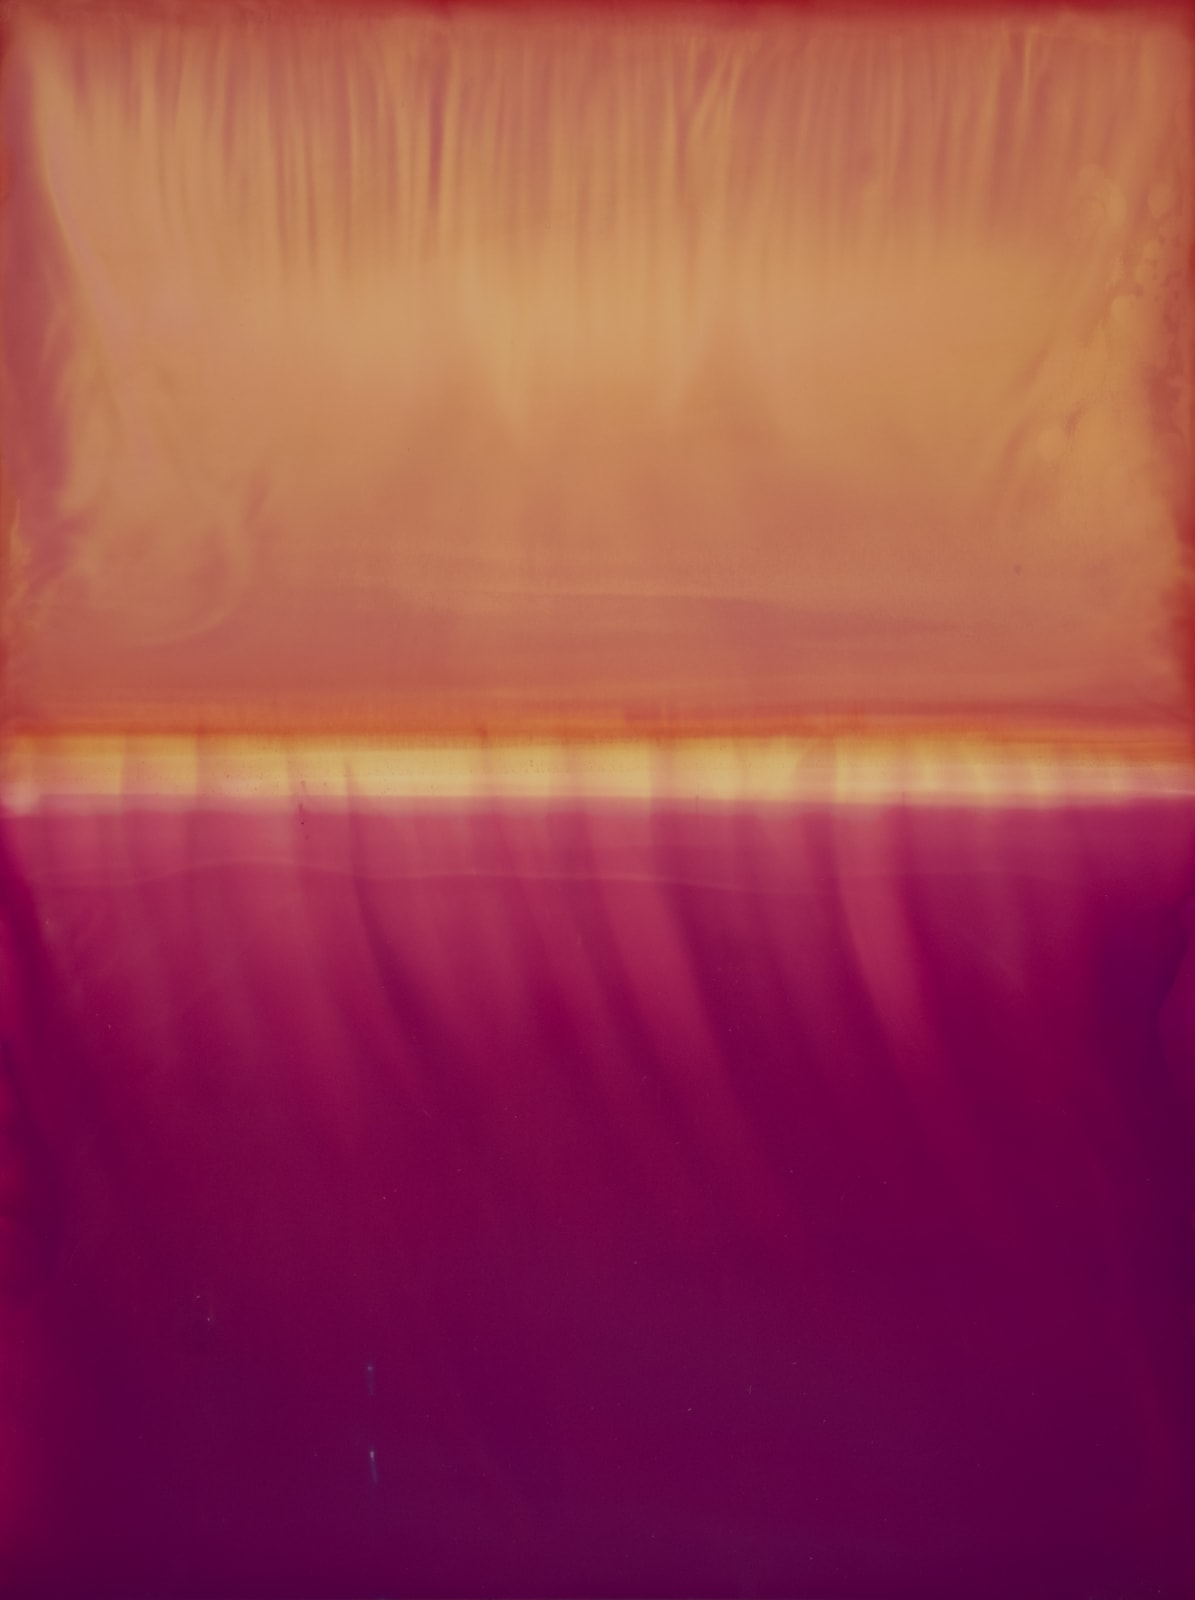 John A. Blythe, KERIII N (PP01.1+5-PF10.1+9)190608 #3 Photography This abstract photograph manages to combine values which are both painterly and photographic, while foregrounding the process of making in a way that draws on conceptual photographic practices.